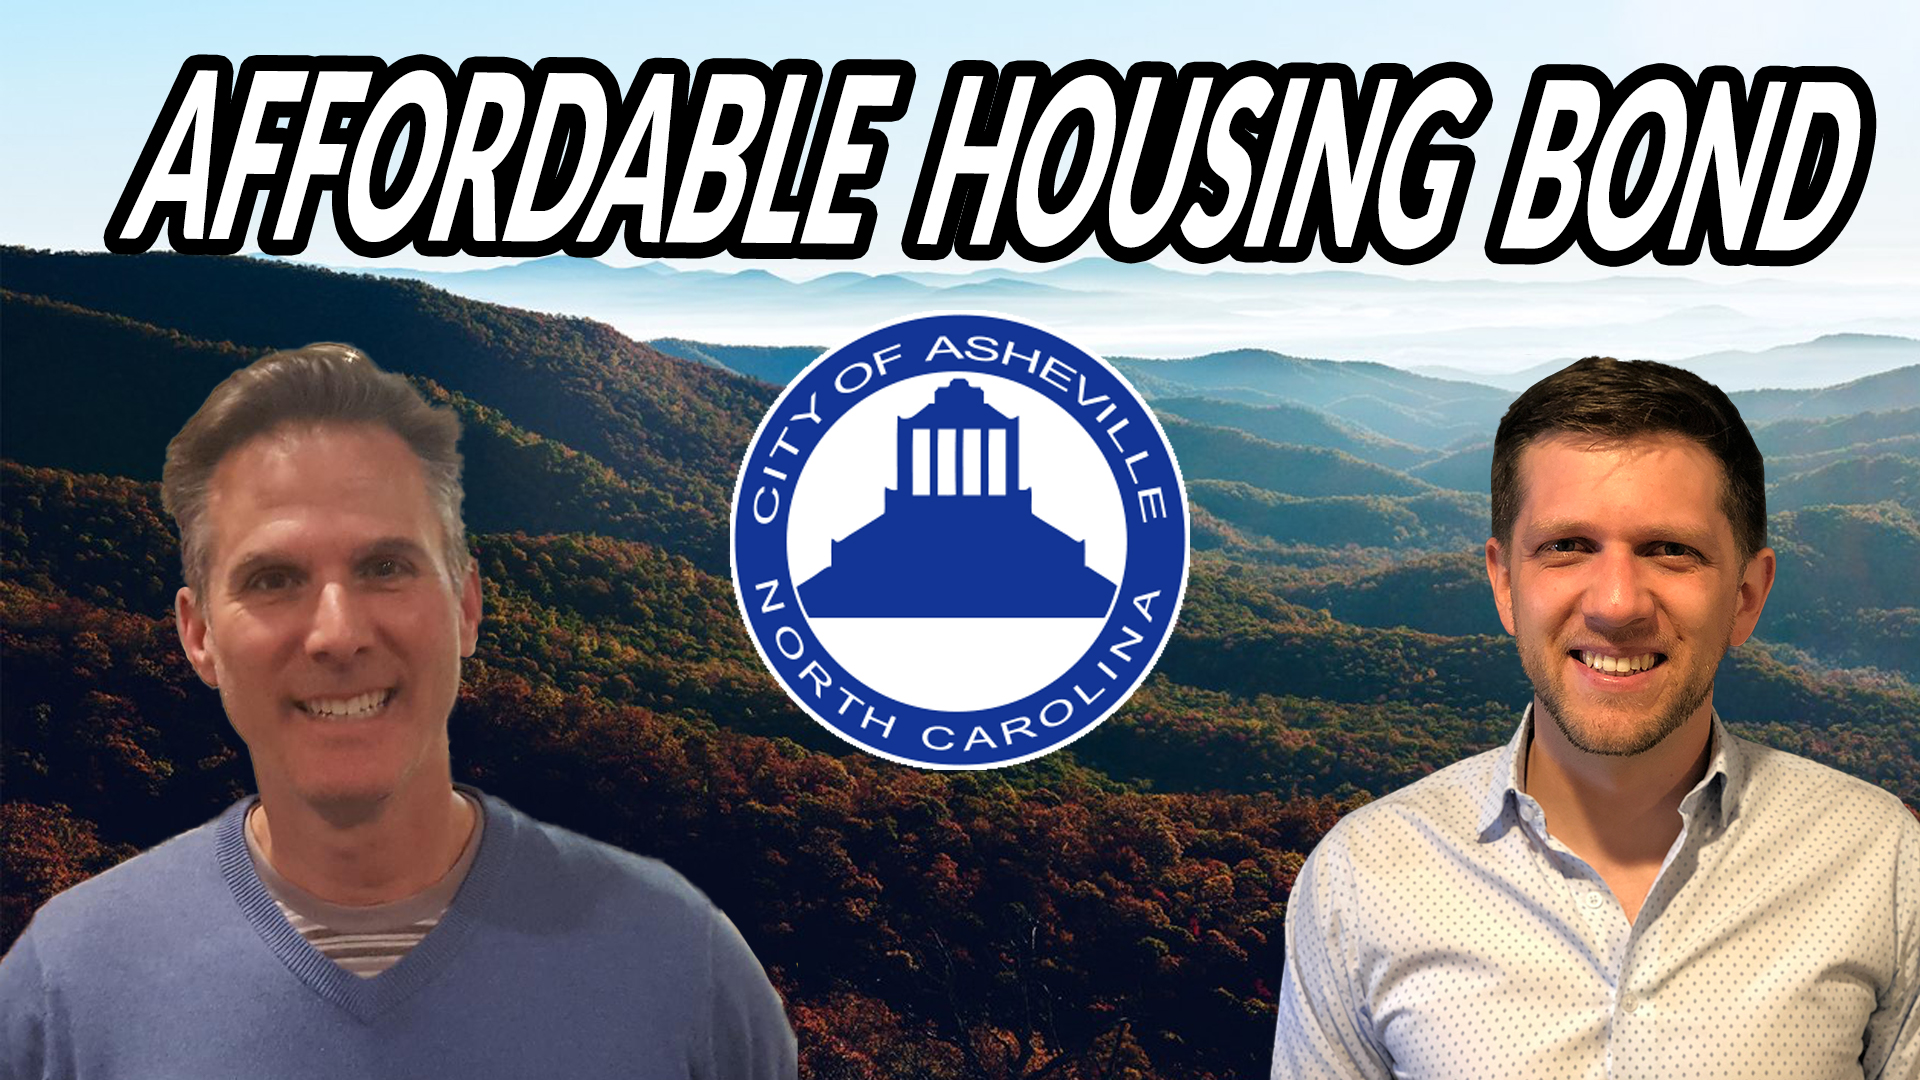 The City of Asheville Affordable Housing Bond